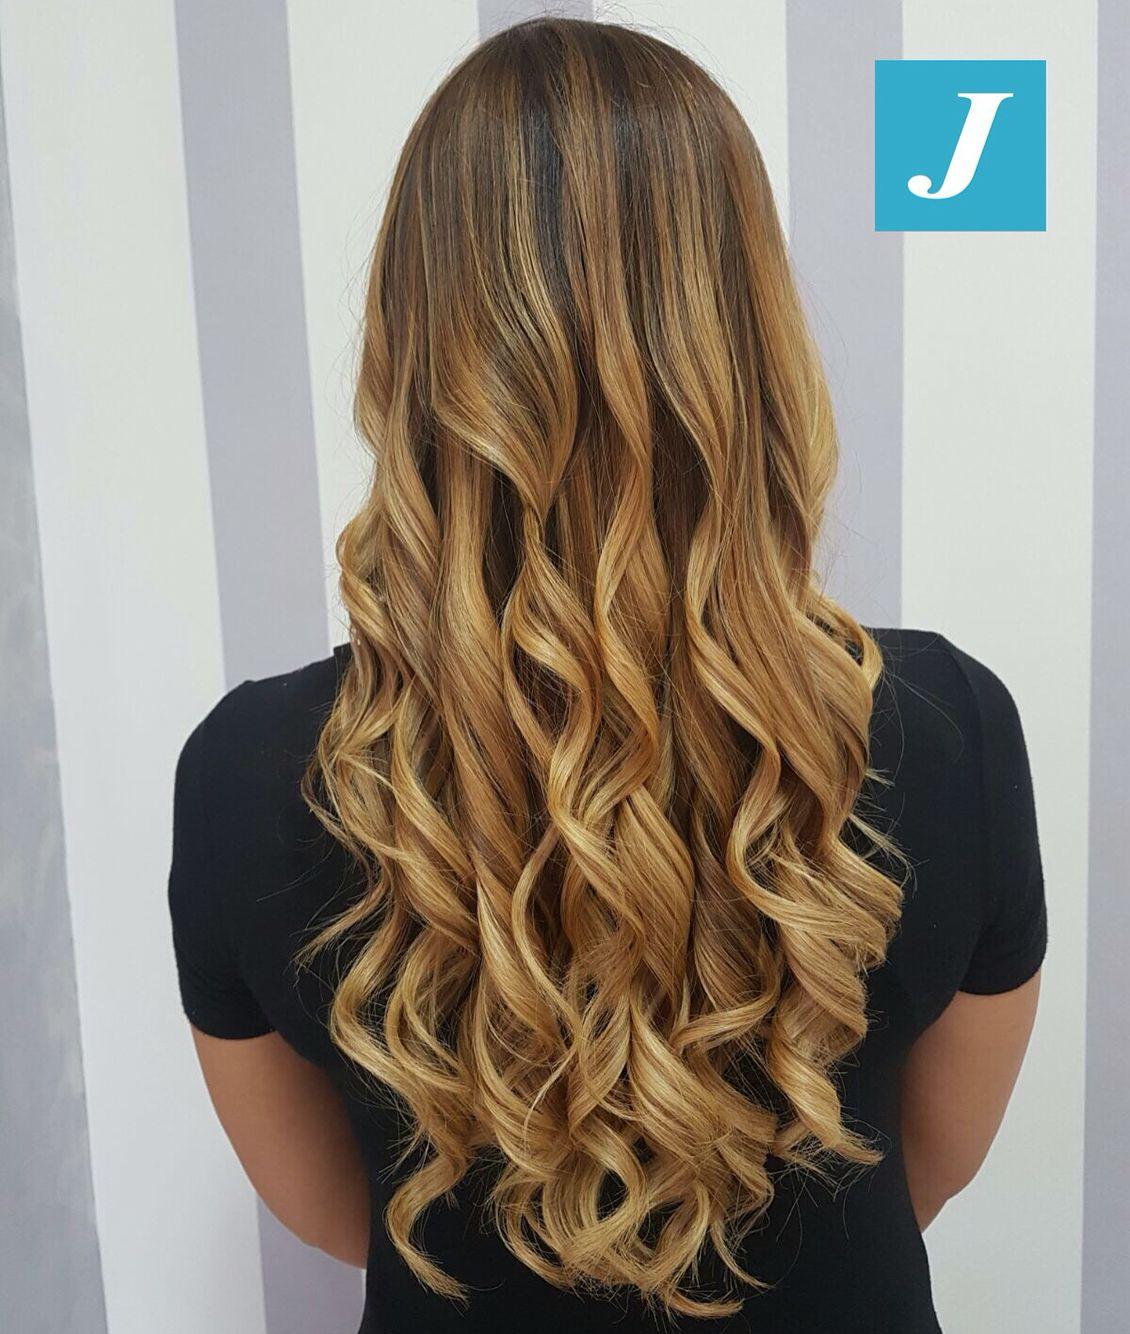 Summer Vibes _ Degradé Joelle  #cdj #degradejoelle #tagliopuntearia #degradé #igers #musthave #hair #hairstyle #haircolour #longhair #ootd #hairfashion #madeinitaly #wellastudionyc